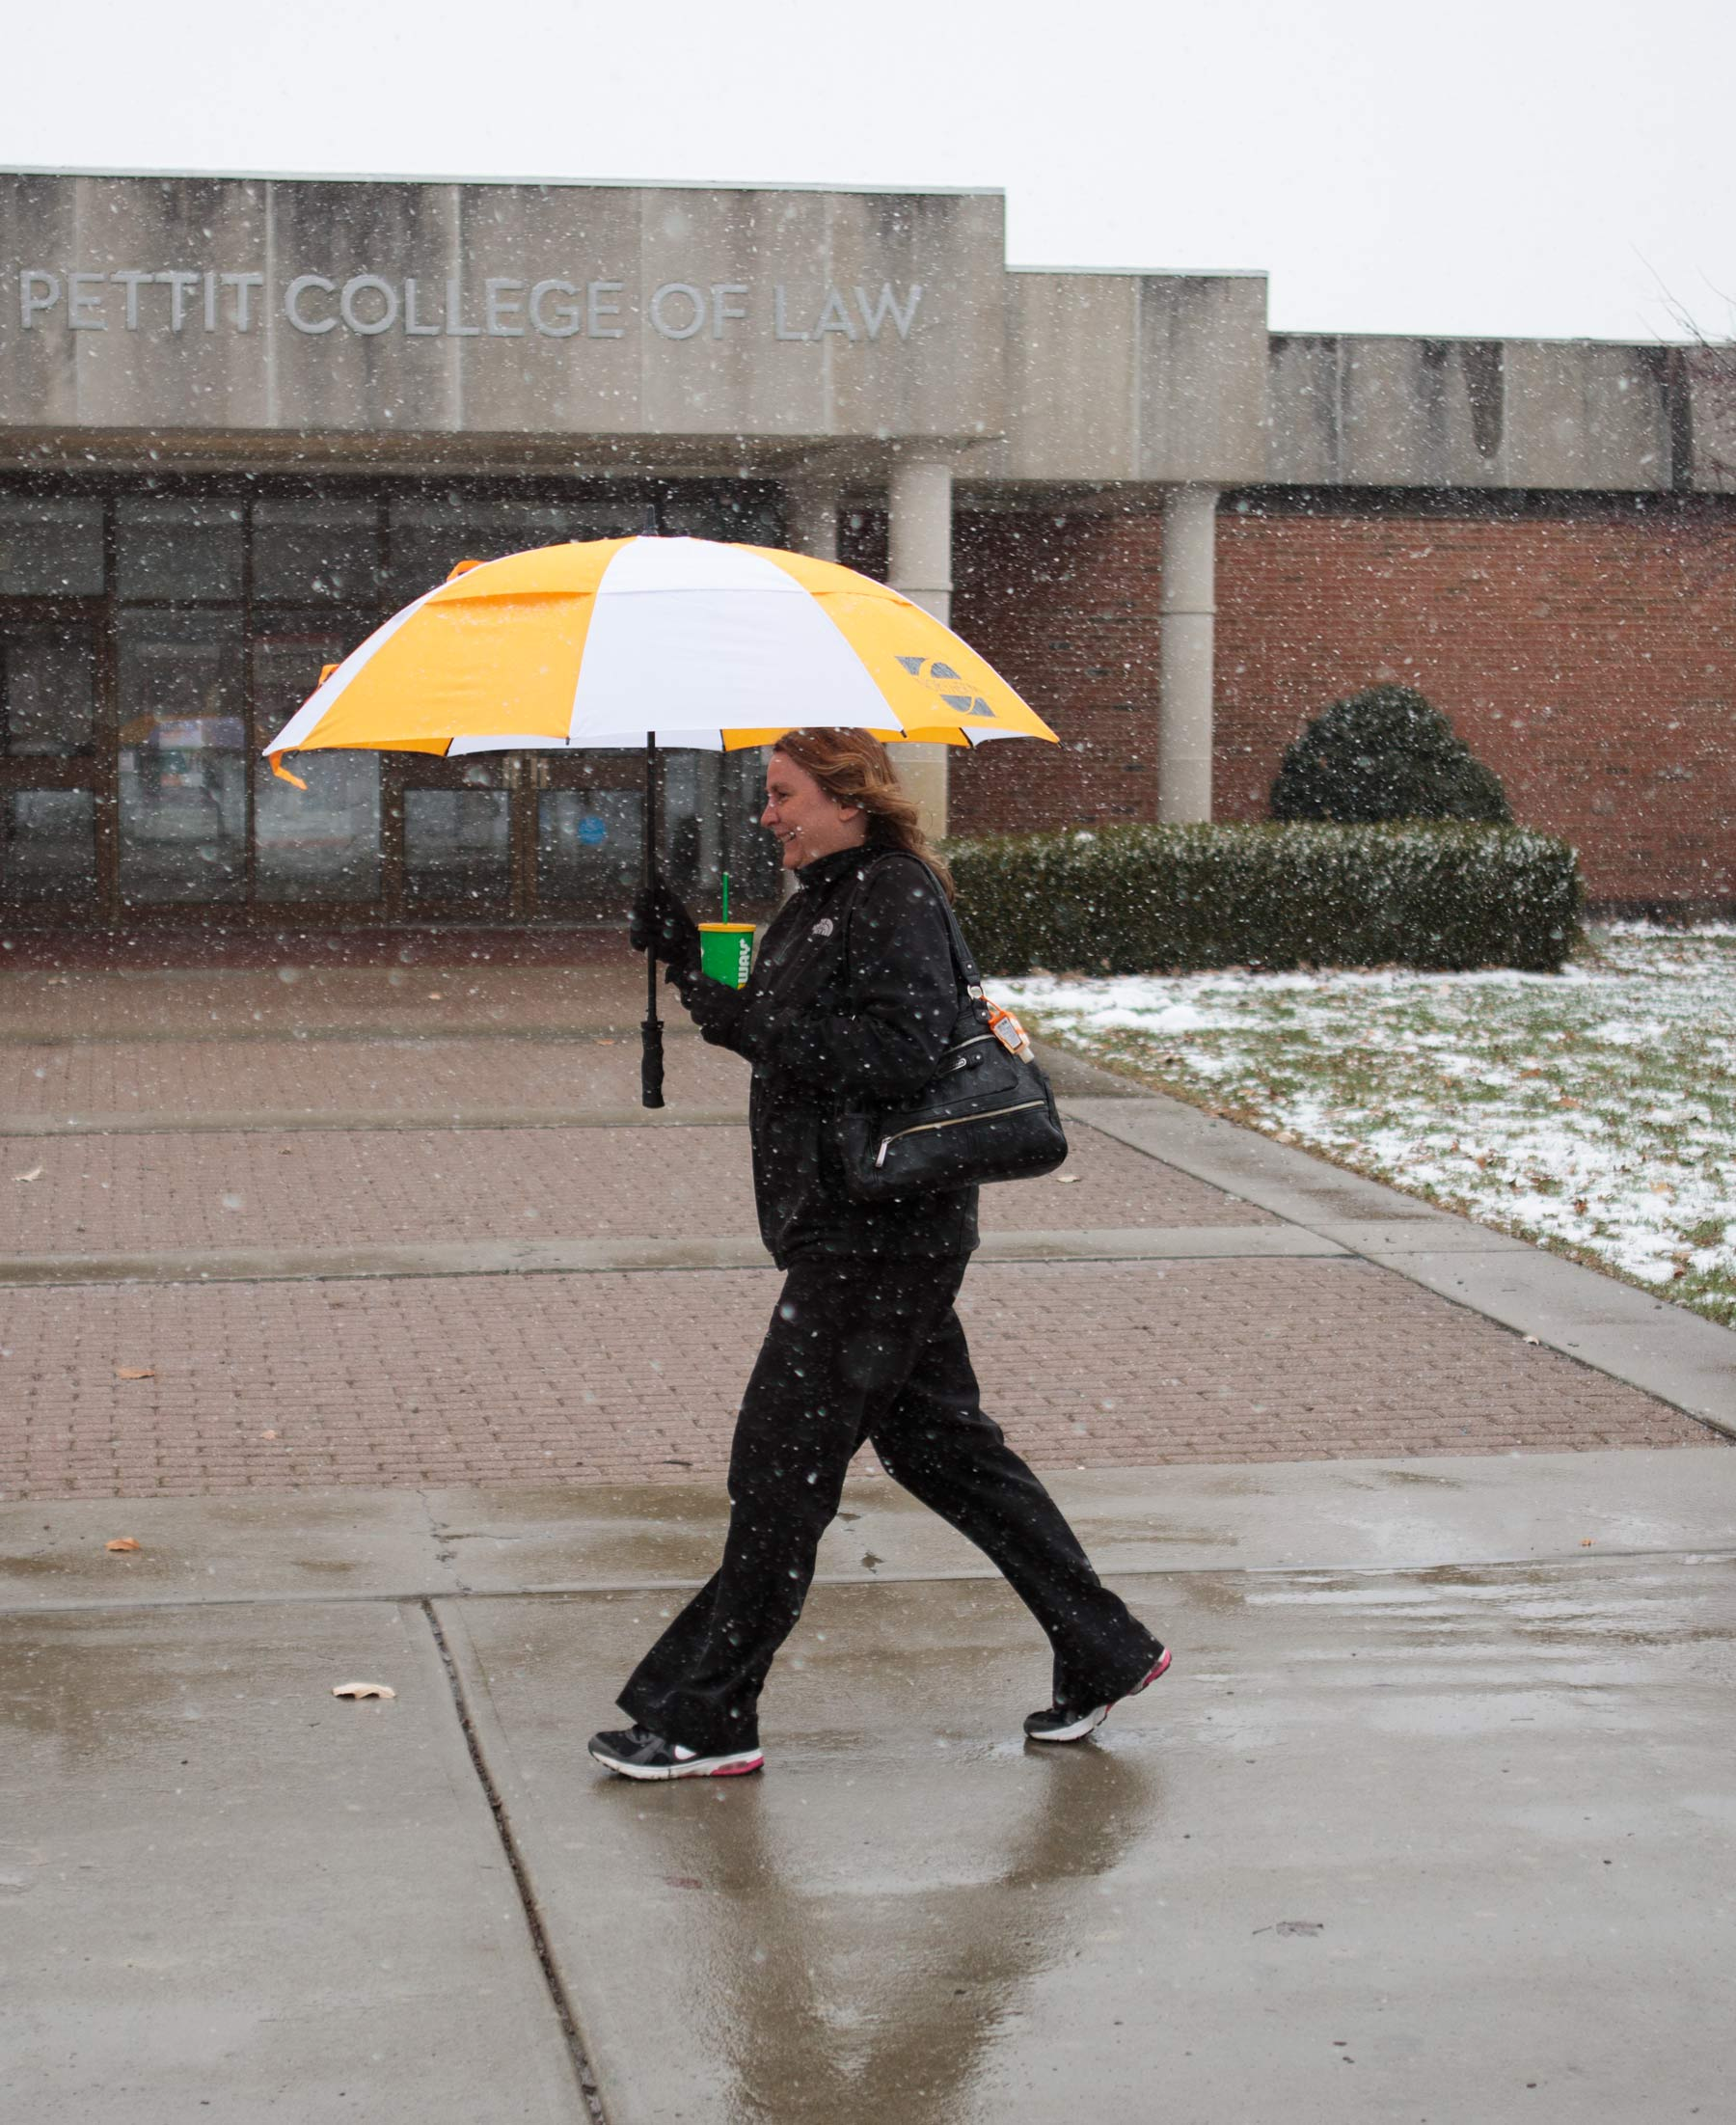 Deb Miller, director of admissions, walks under an umbrella through the snow